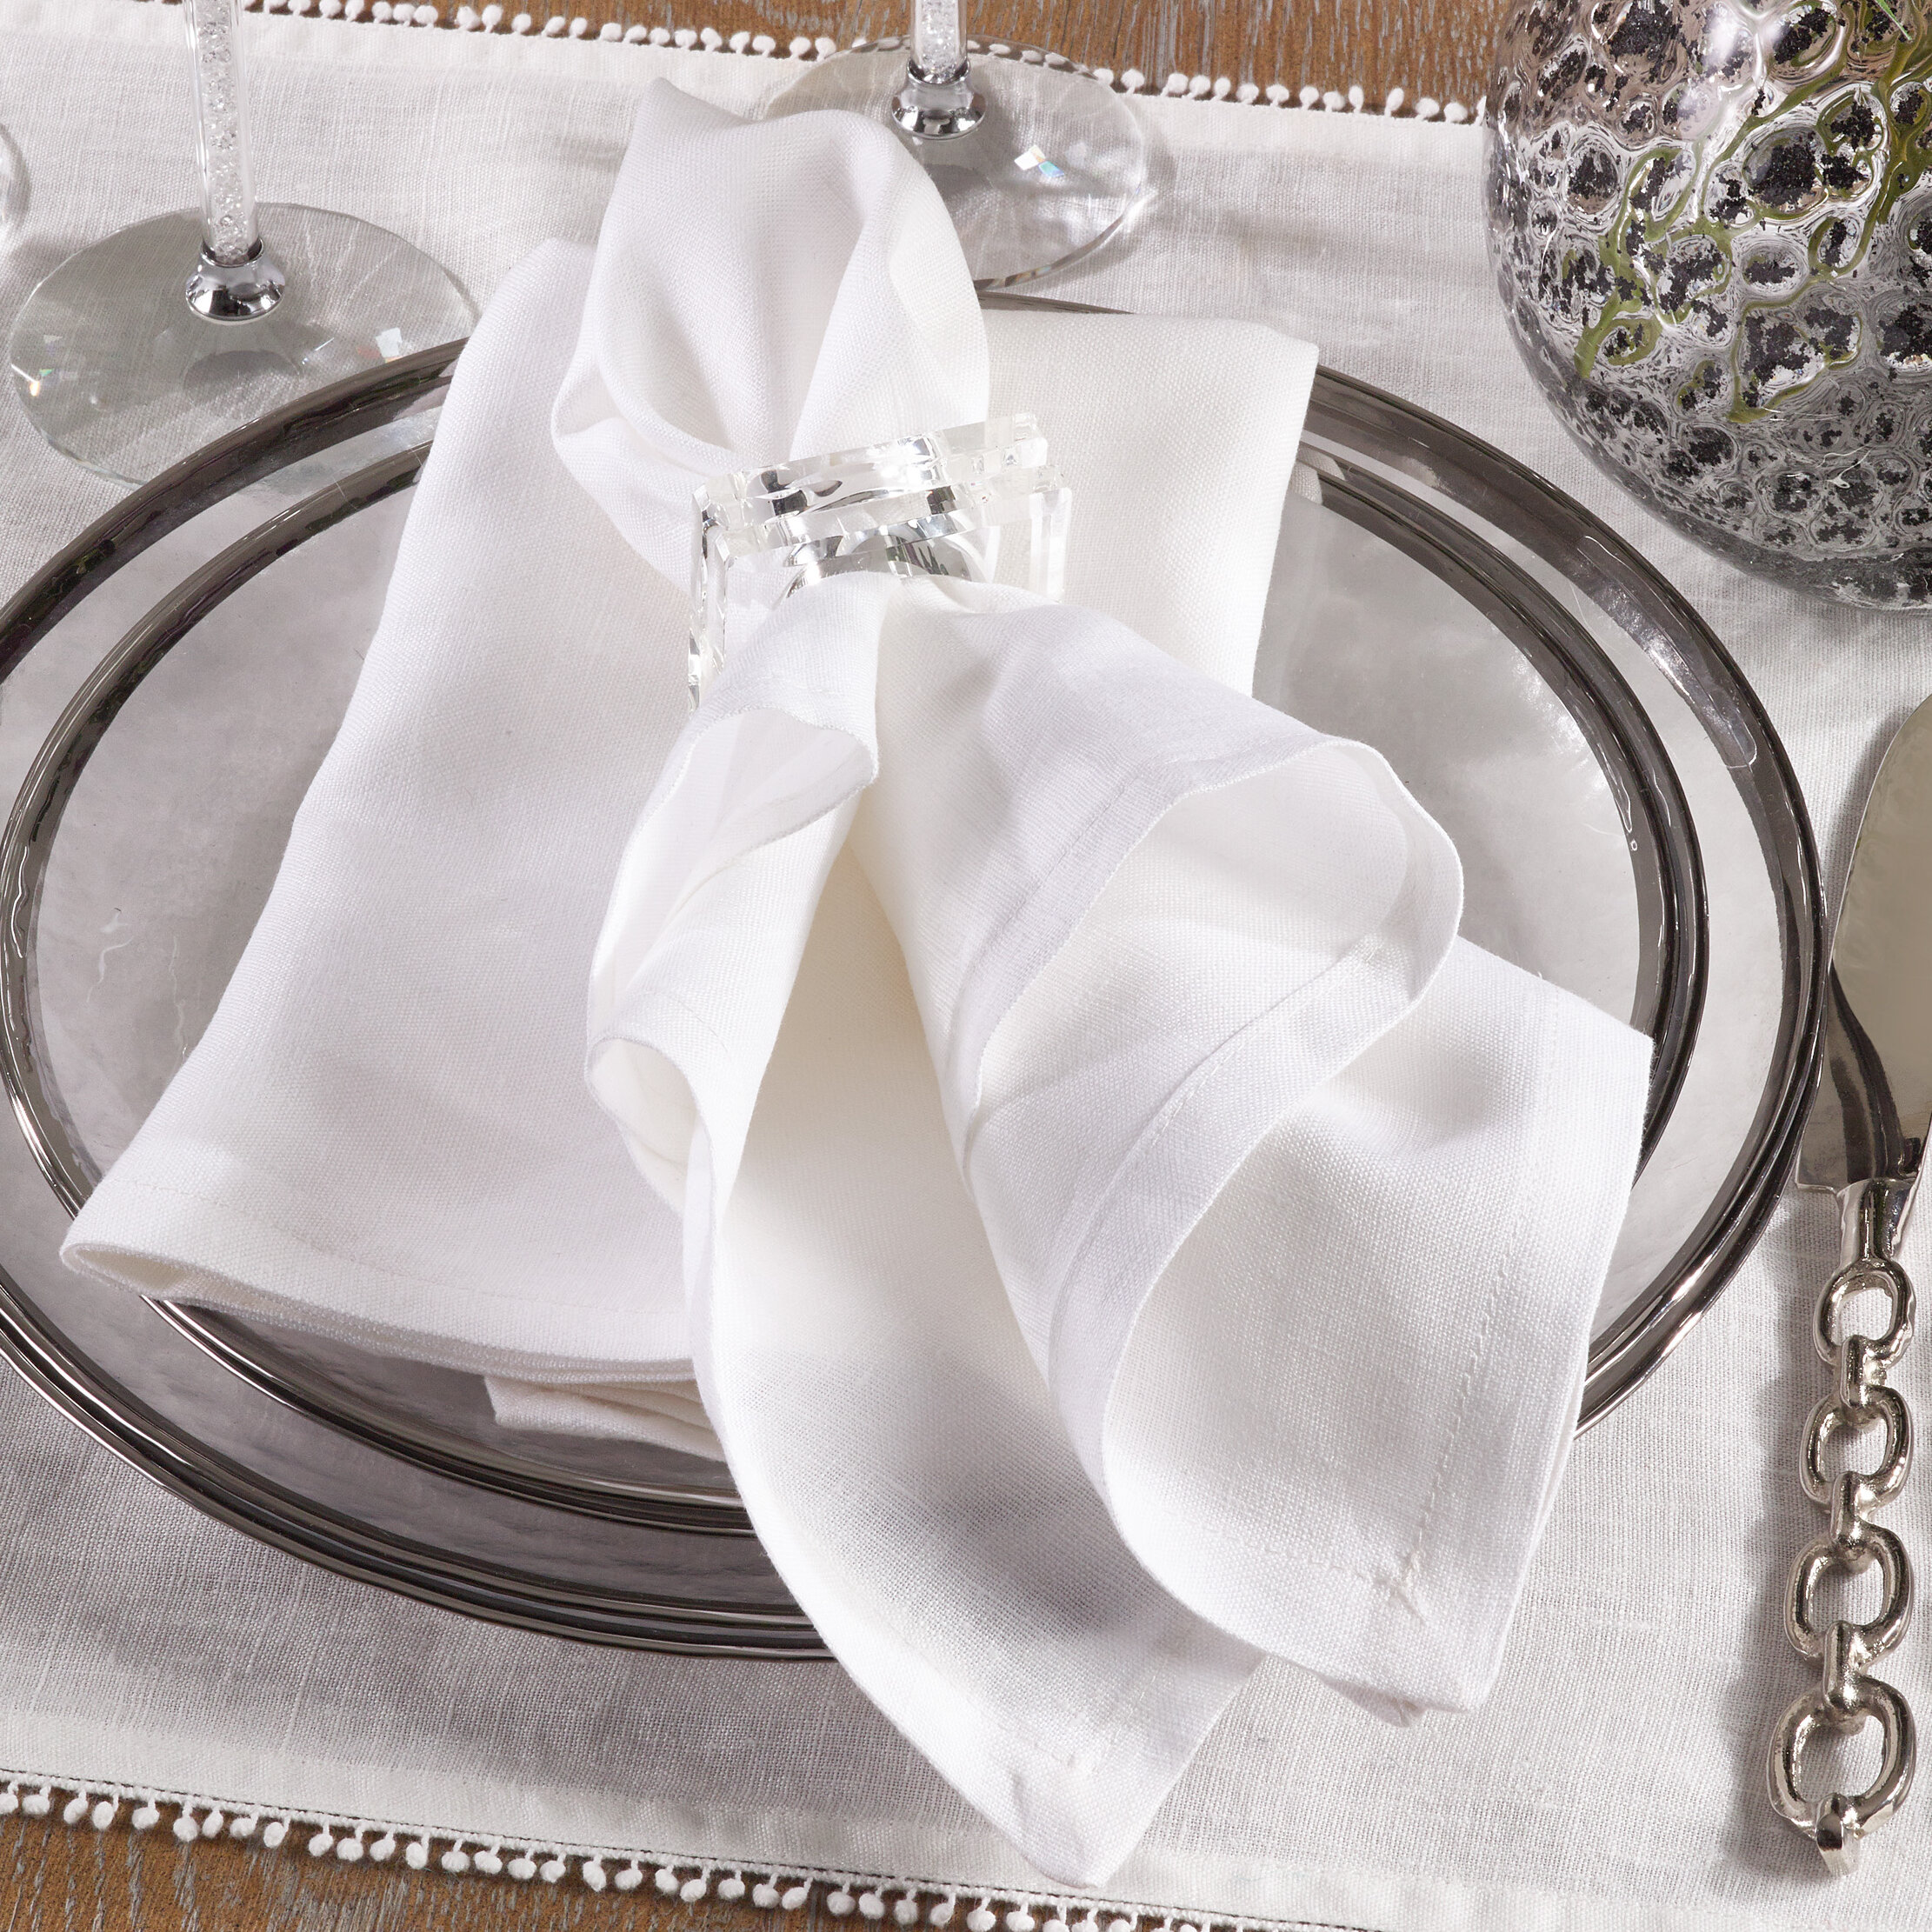 Alcott Hill Falk Classic Basic Linen Dinner 20 Napkin Wayfair